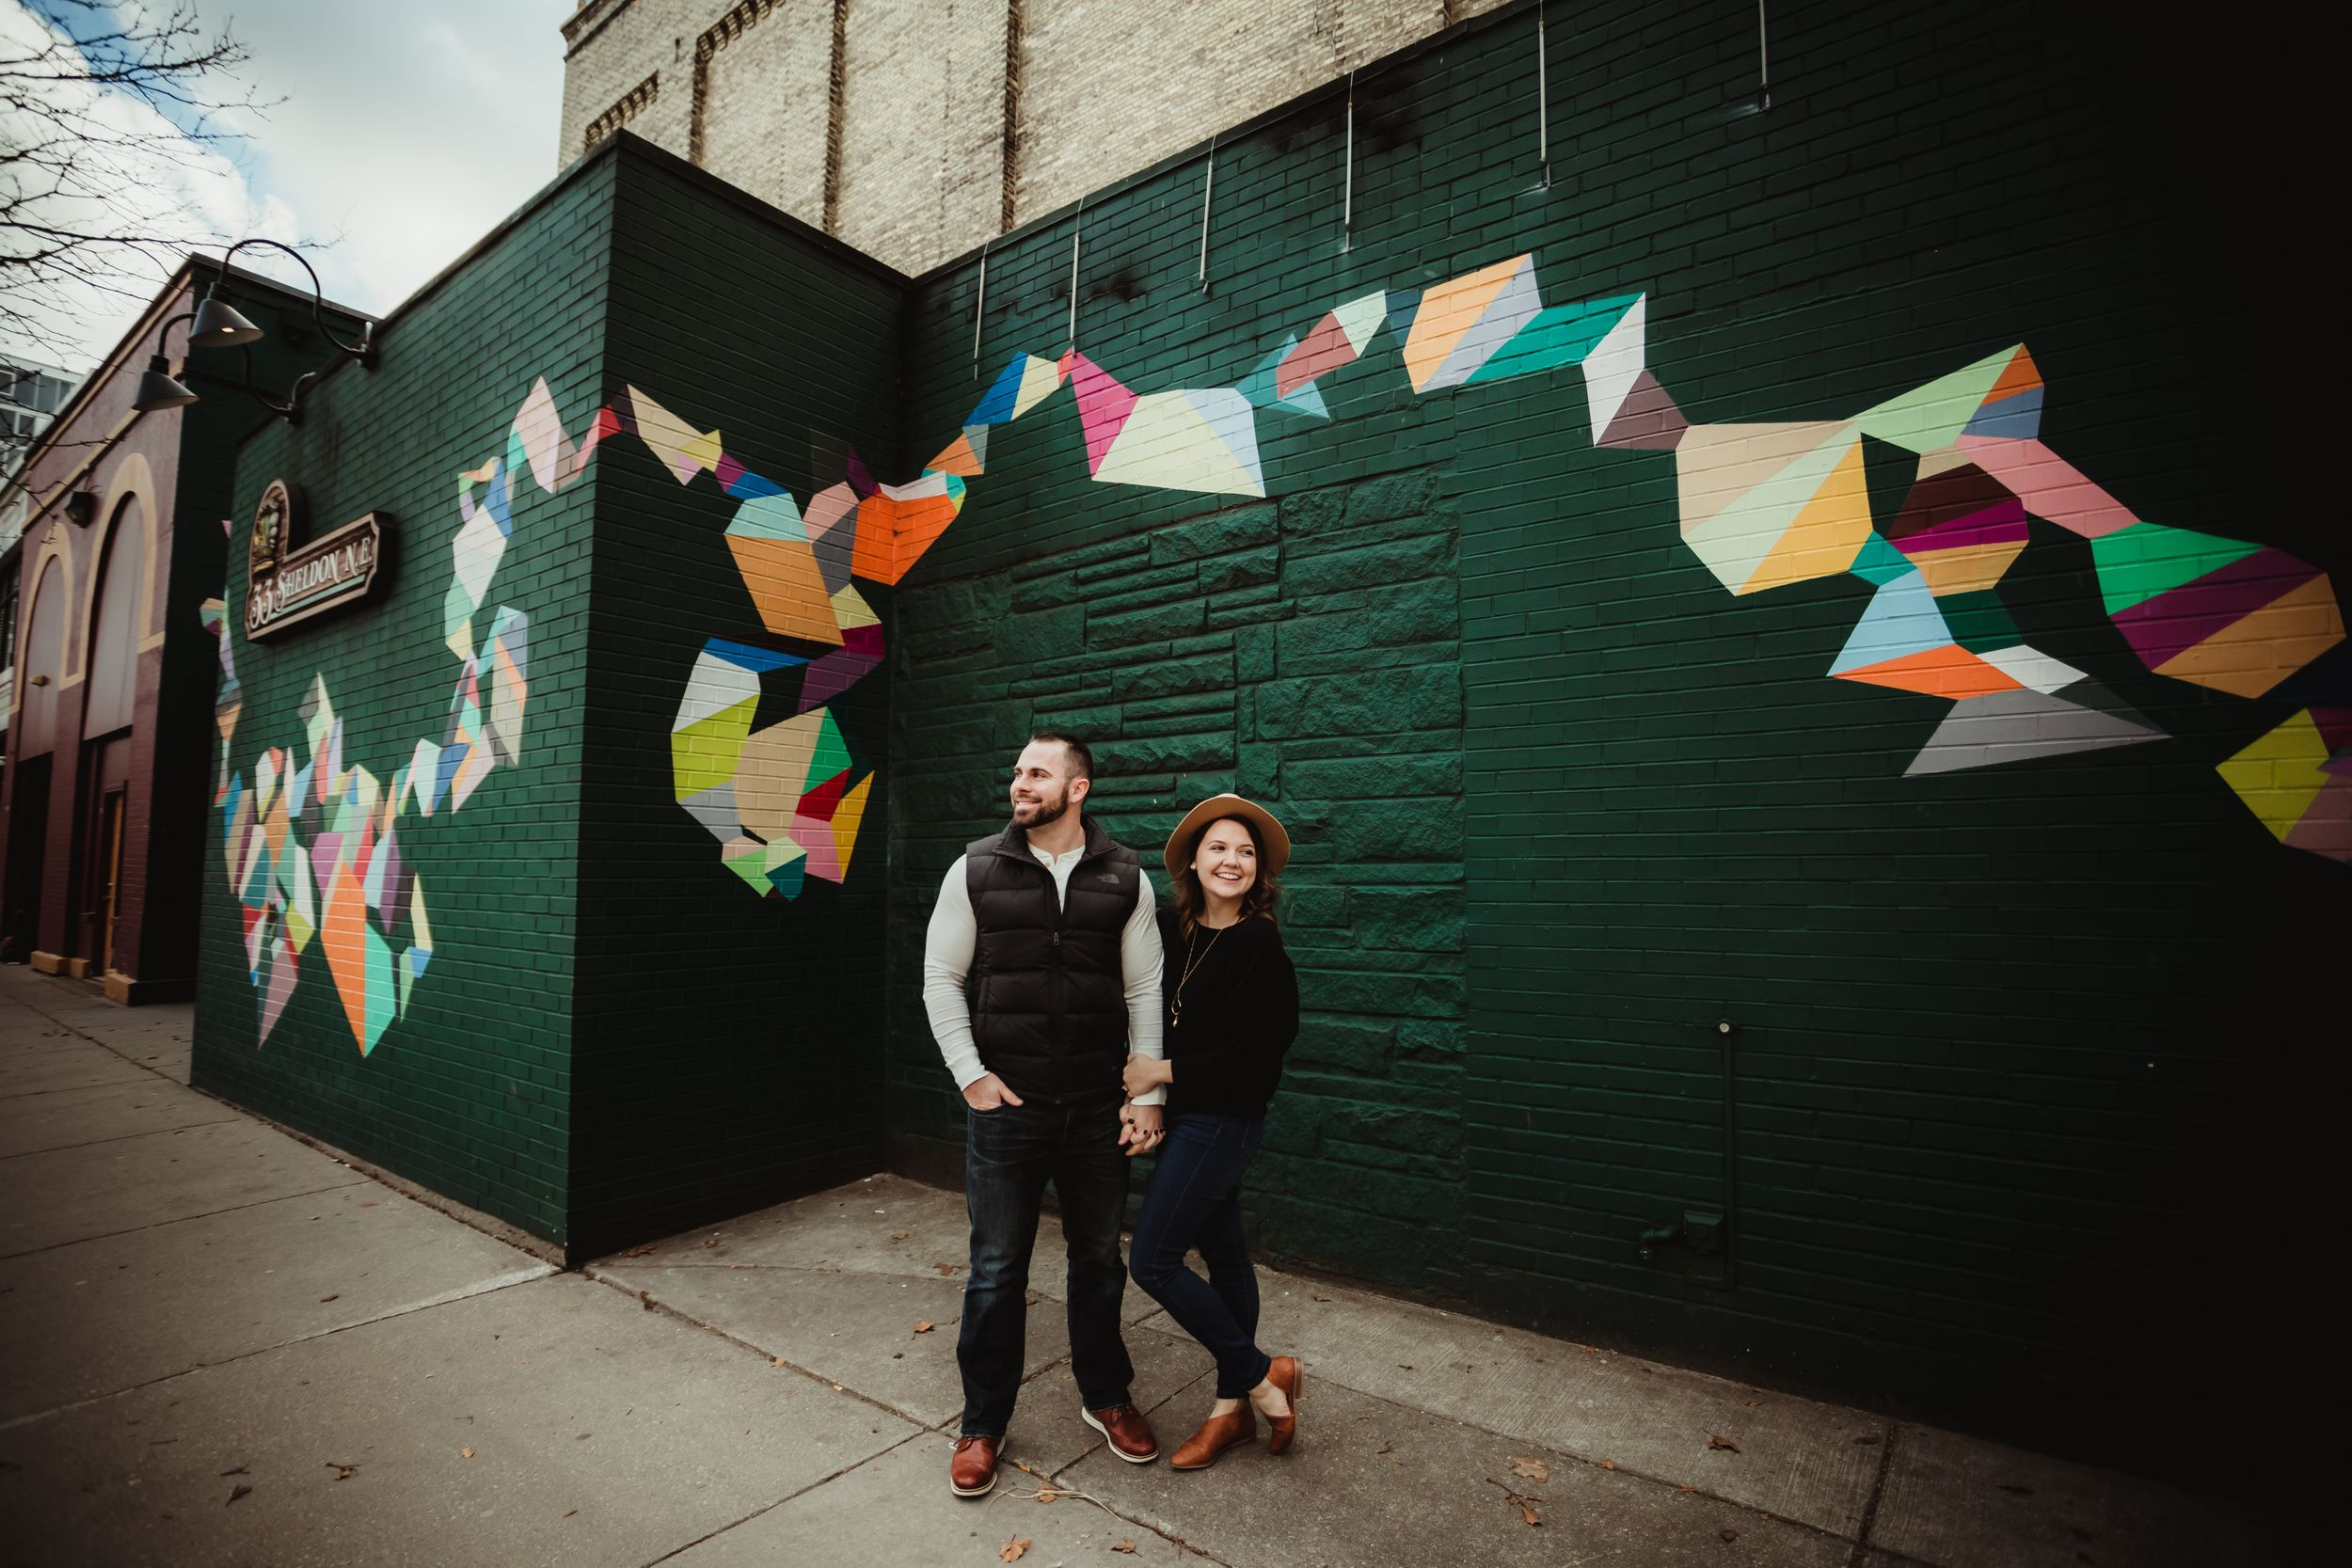 Man and woman hold hands and smile in front of a dark green wall with a colorful mural.